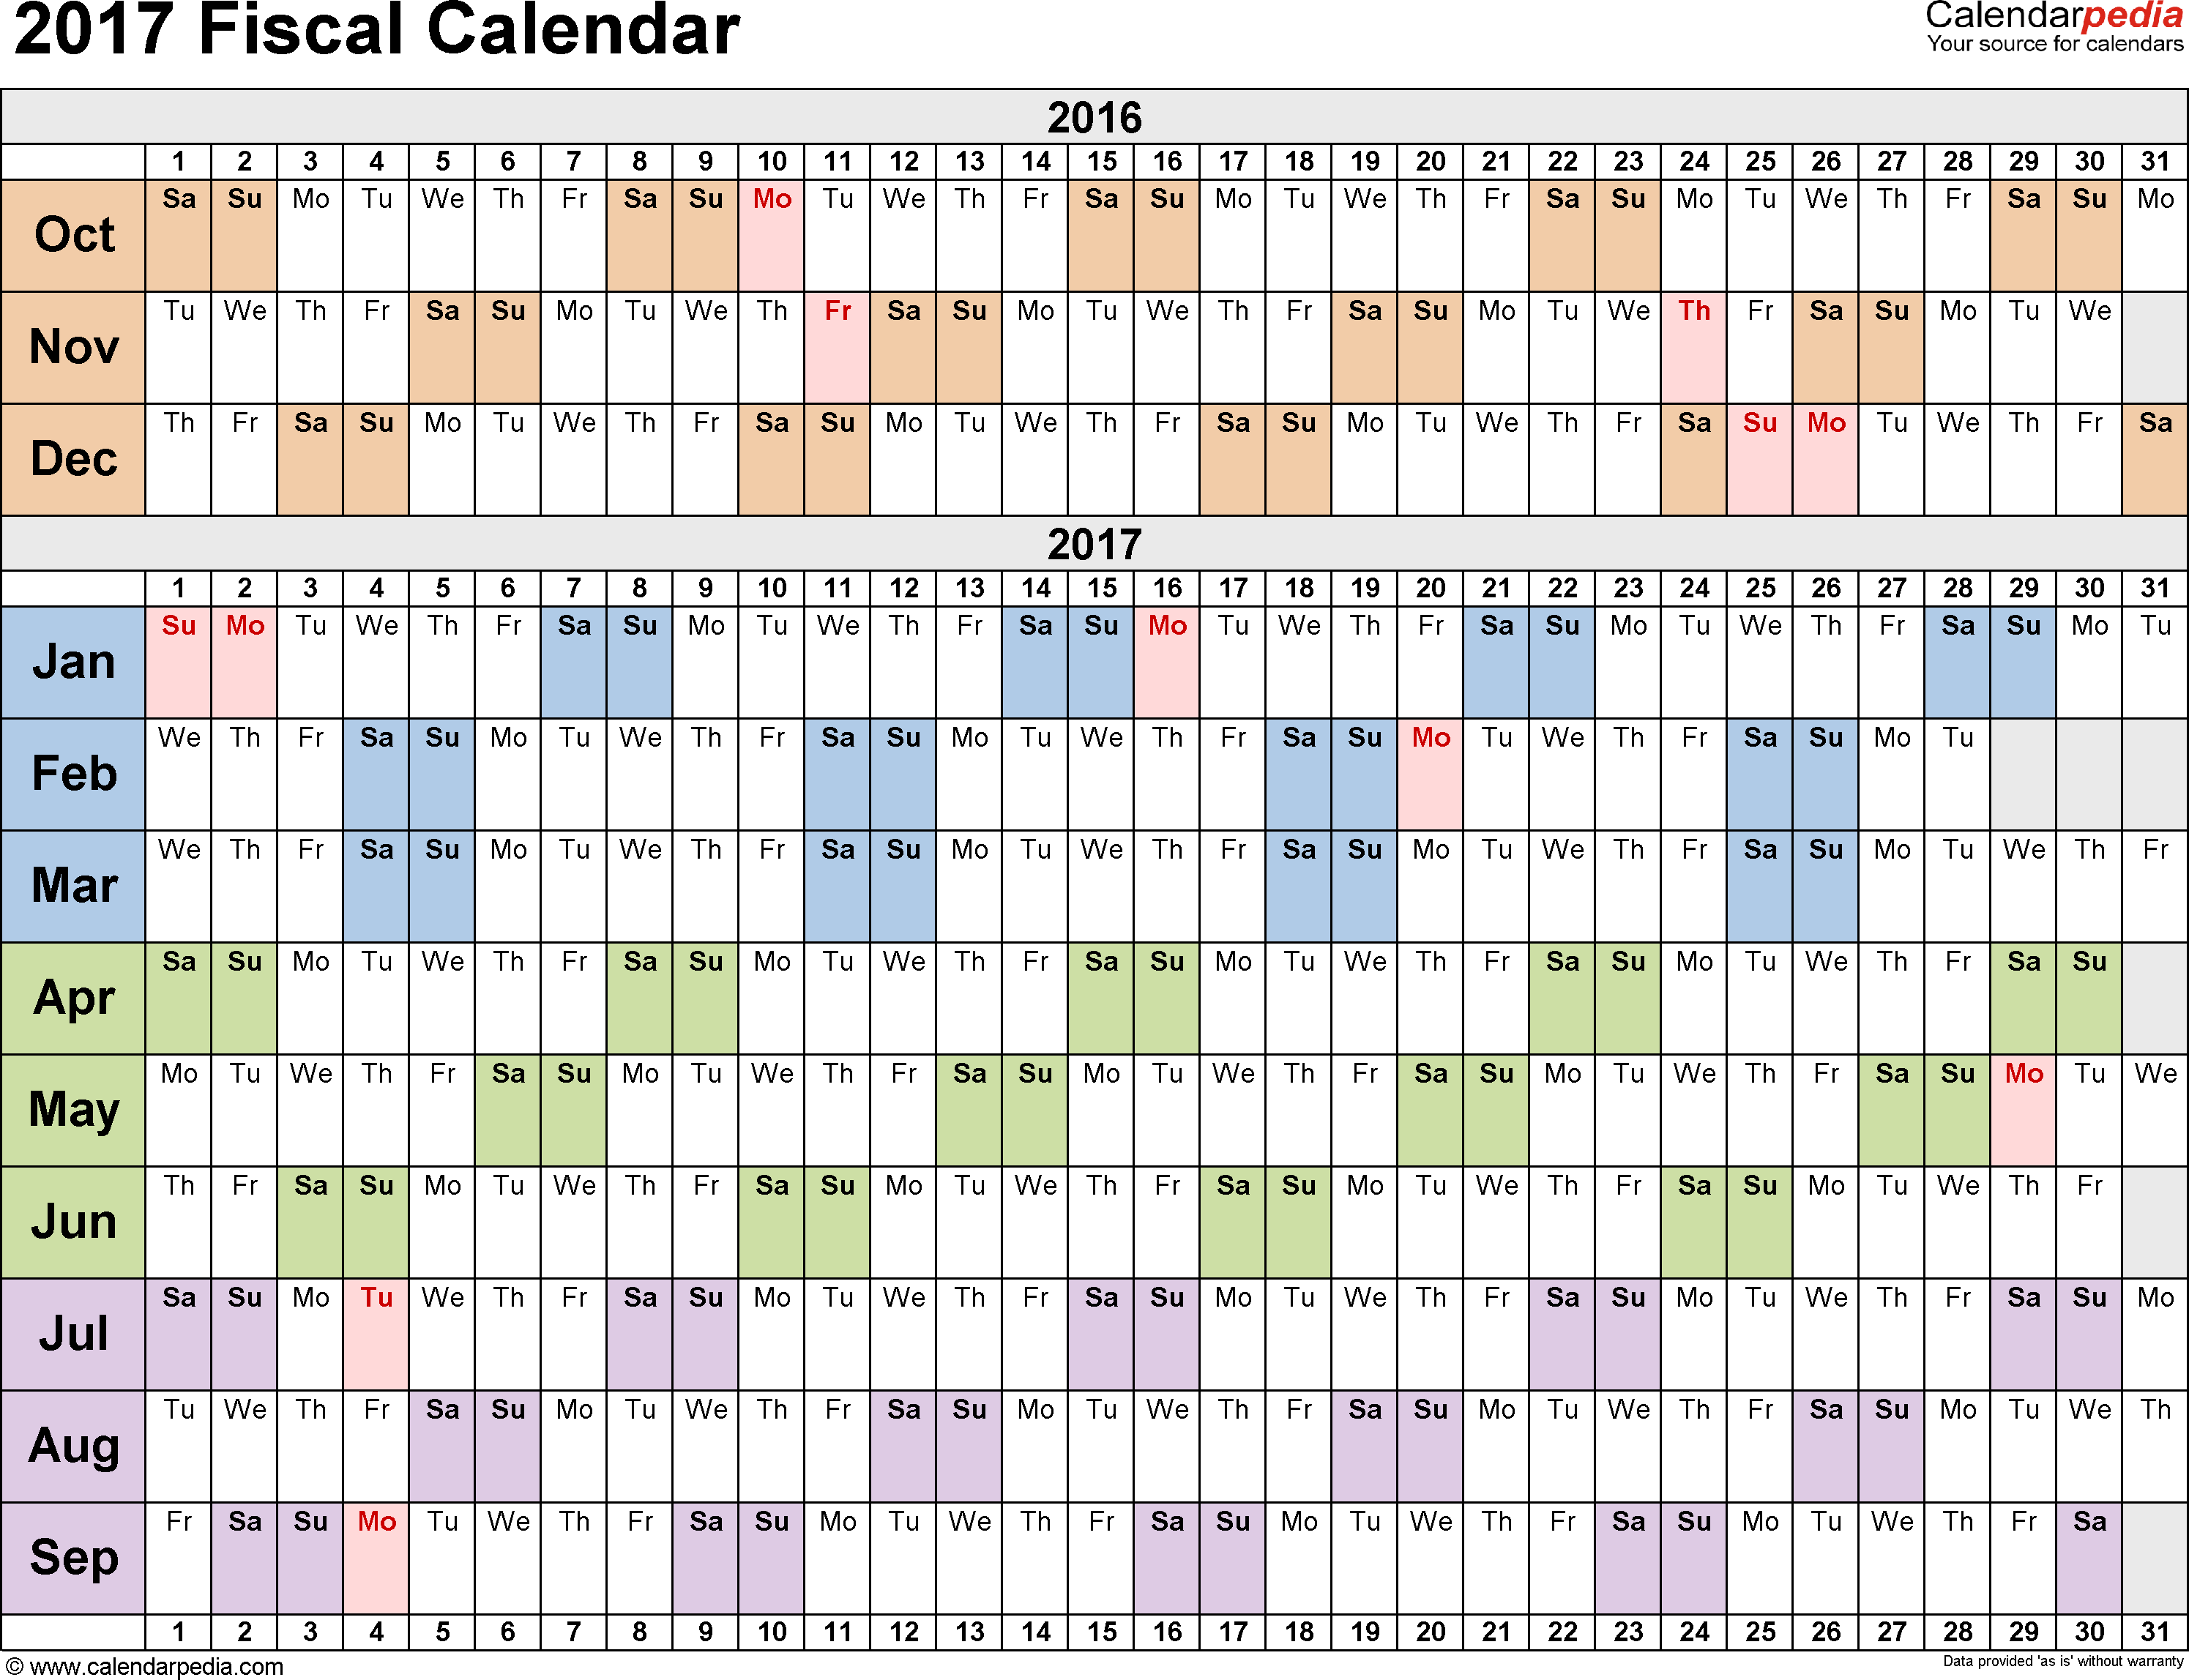 Fiscal calendars 2017 as free printable excel templates template 2 fiscal year calendar 2017 for excel landscape orientation days horizontally alramifo Gallery